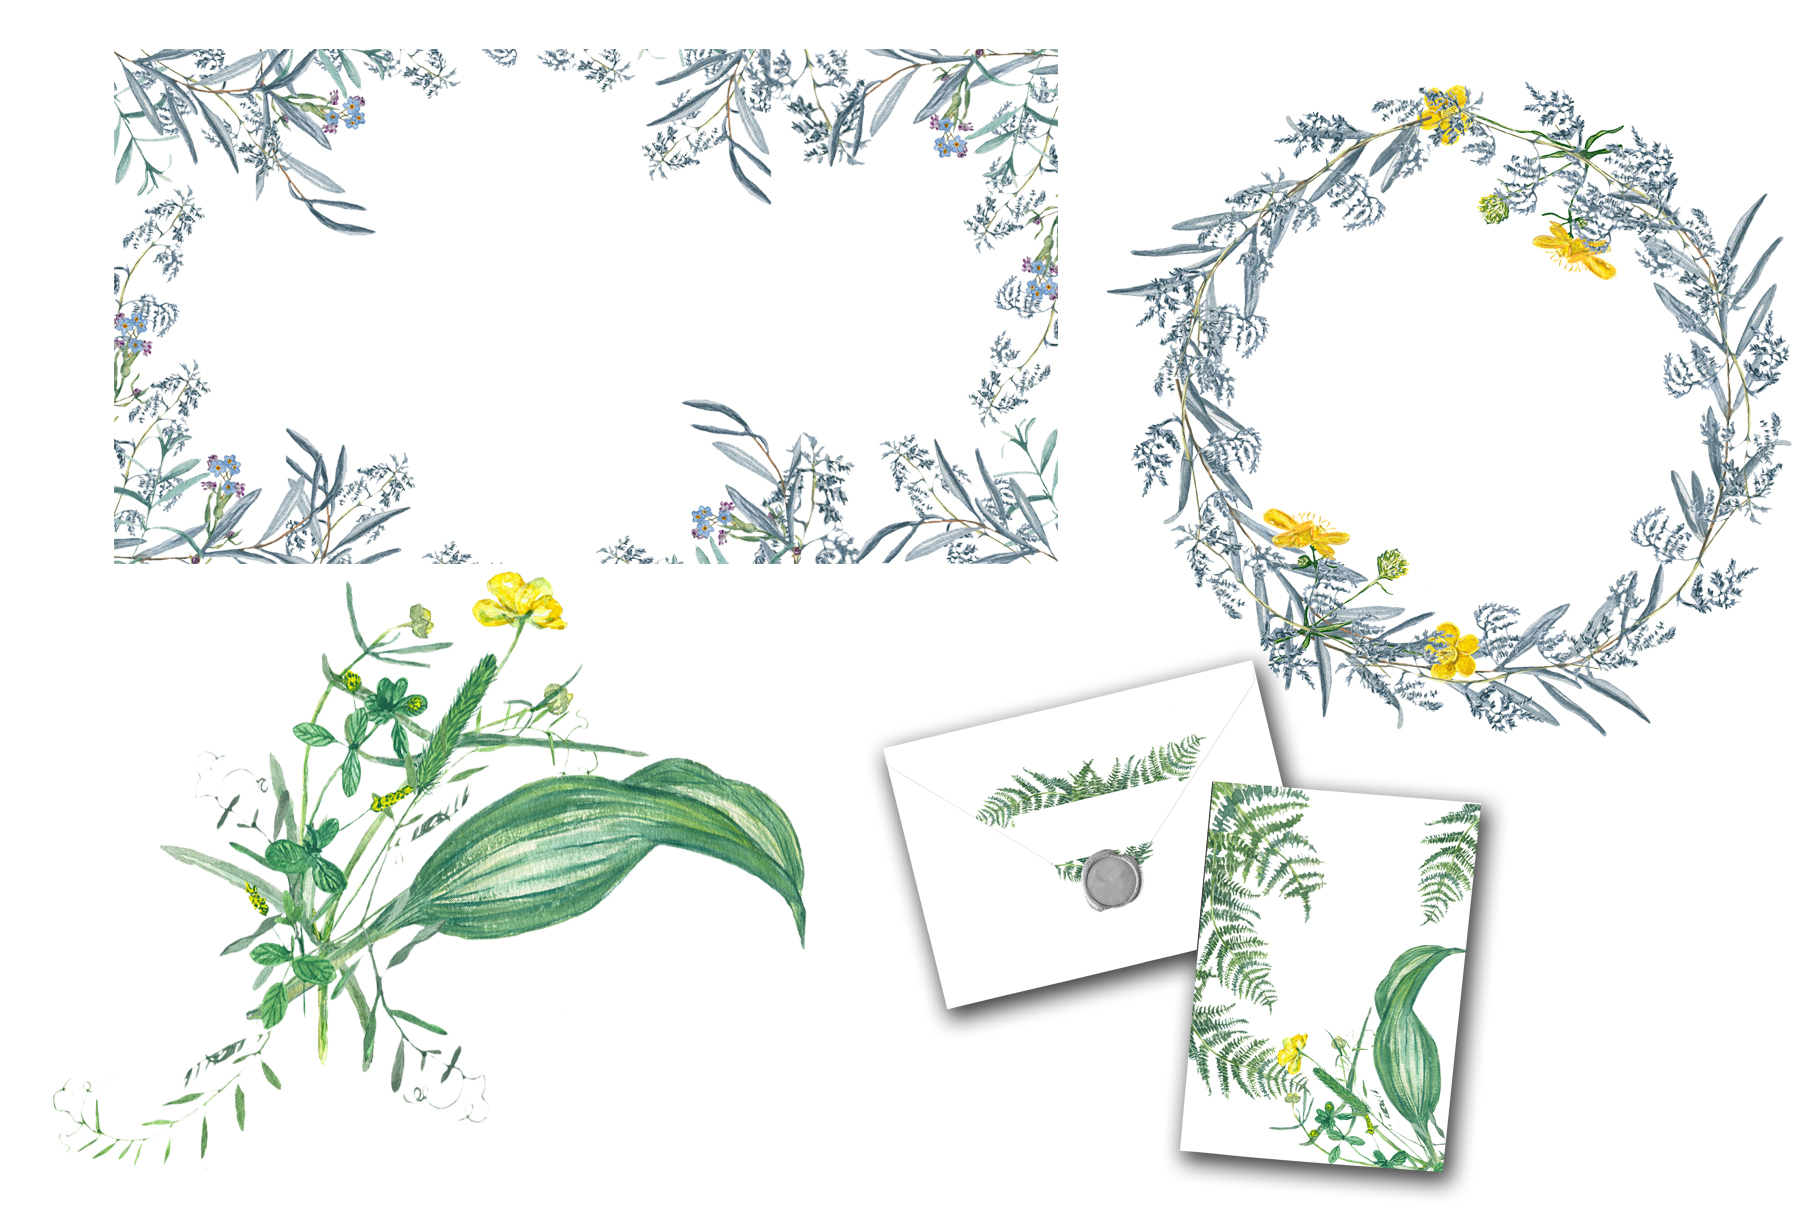 Watercolor grass and wildflowers example image 6